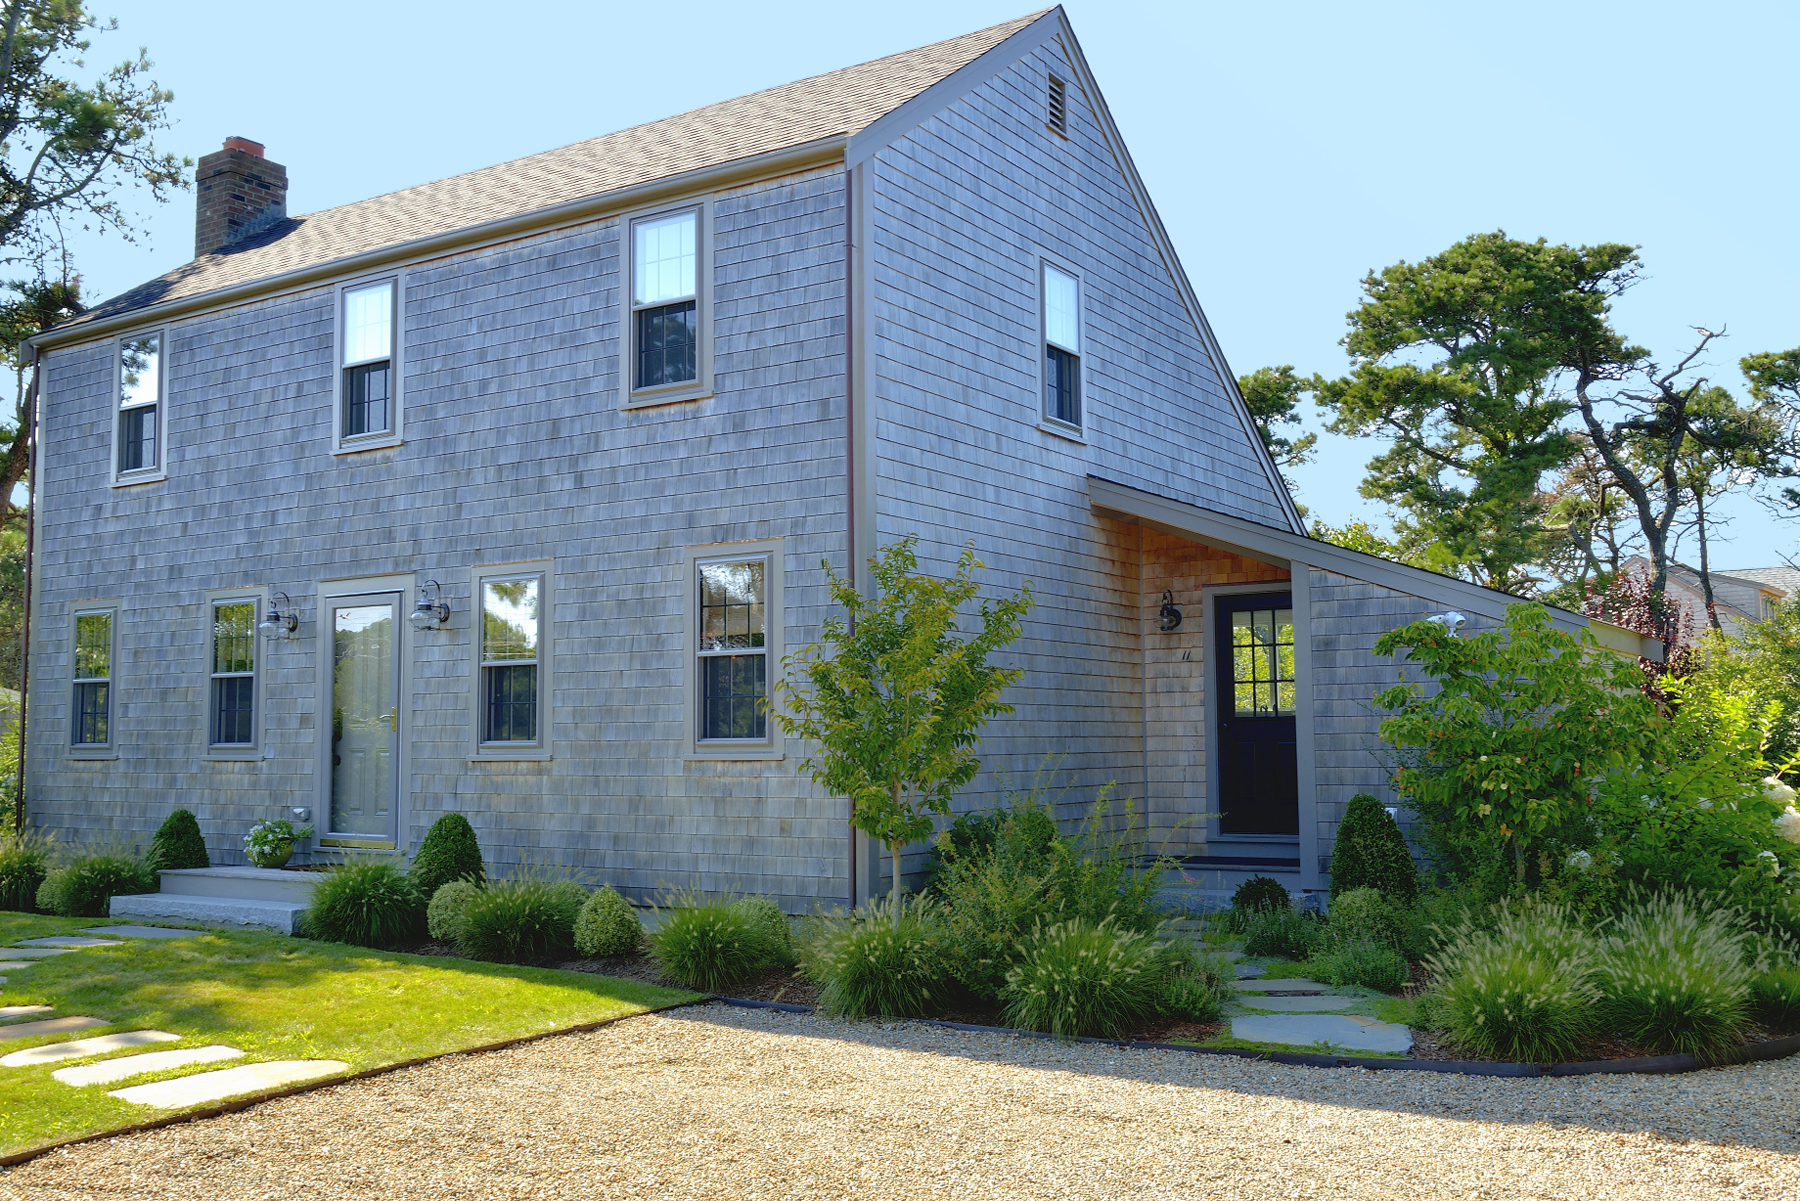 Single Family Home for Sale at Quiet Street - Central Location - Close to the Beach 11 Gray Avenue Nantucket, Massachusetts 02554 United States